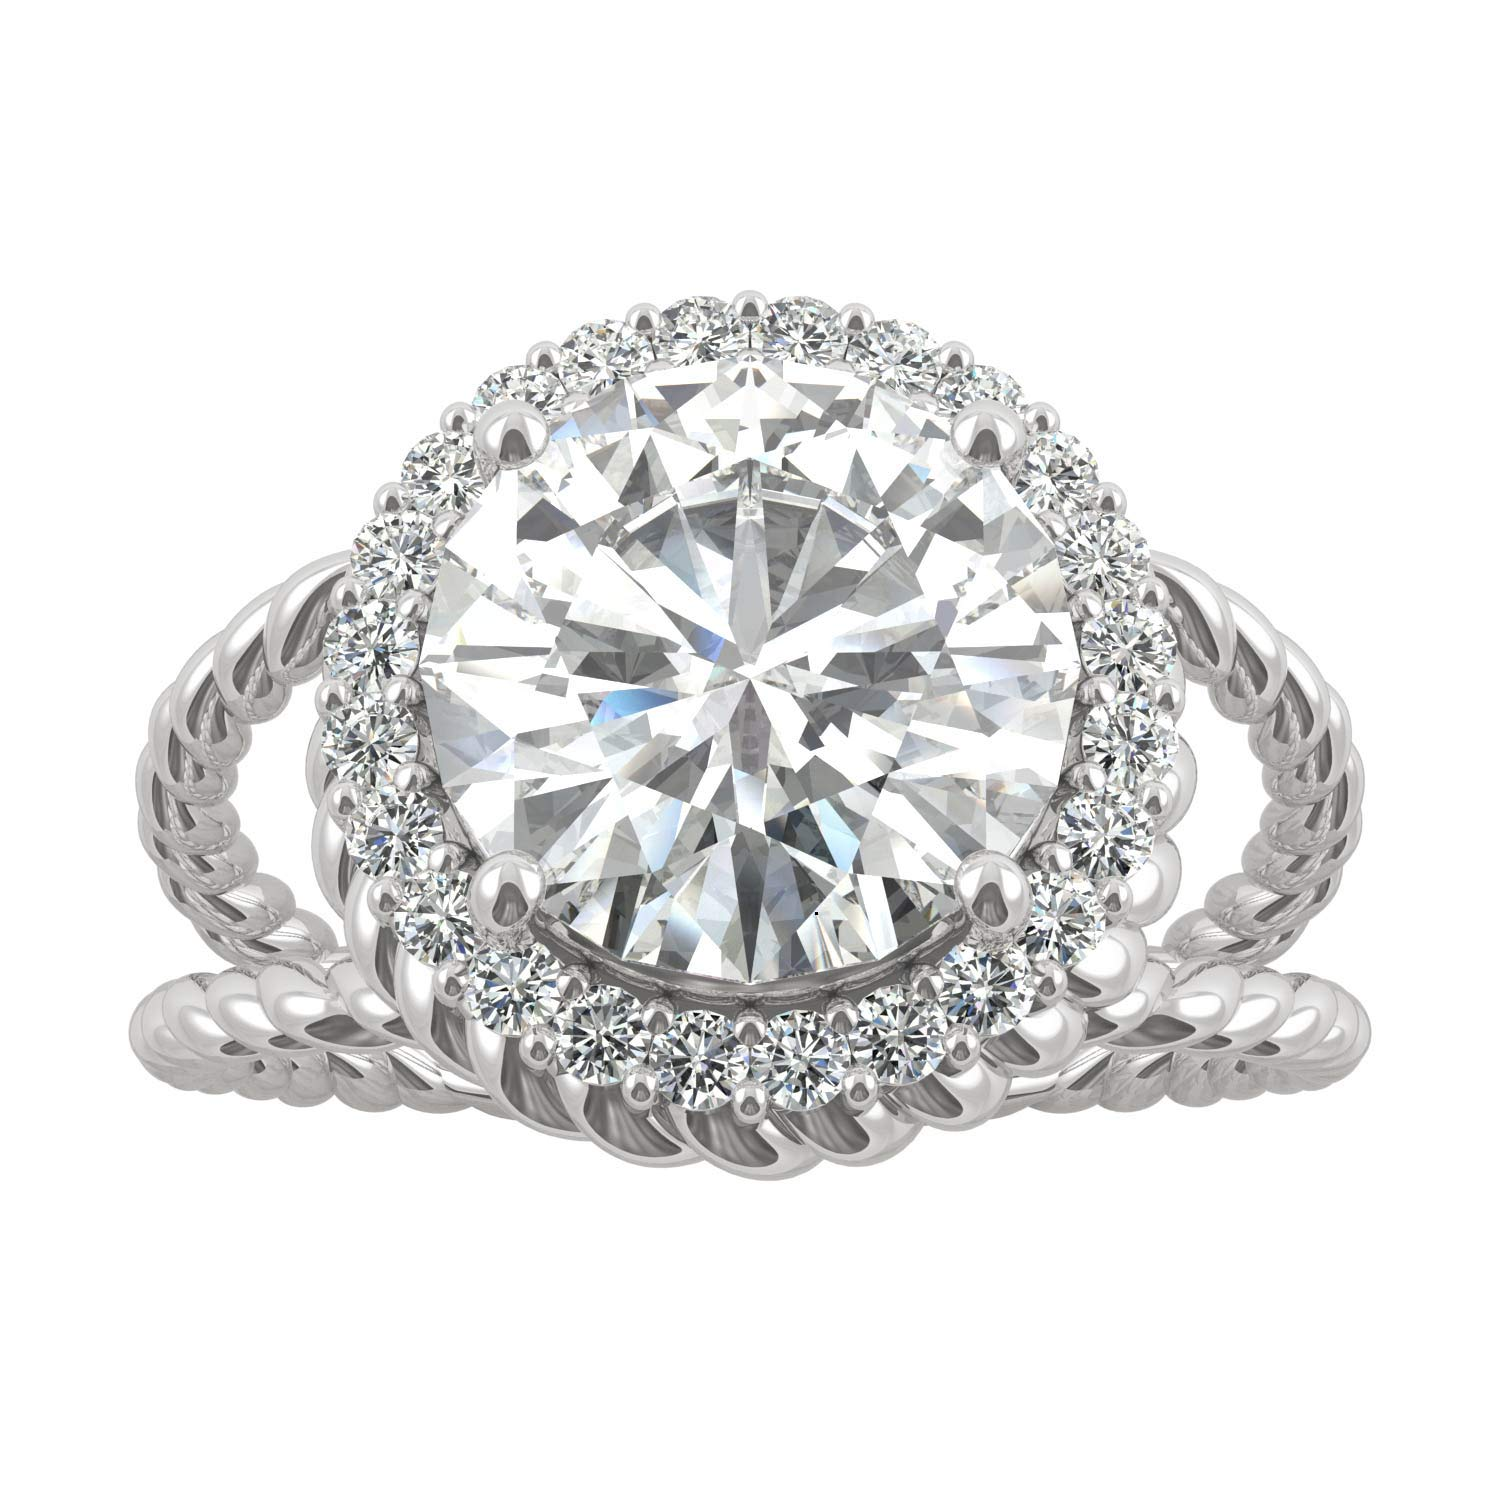 14K White Gold Forever Brilliant 9mm Round Halo Split Shank Engagement Ring- size 8, 2.94cttw DEW by Charles & Colvard